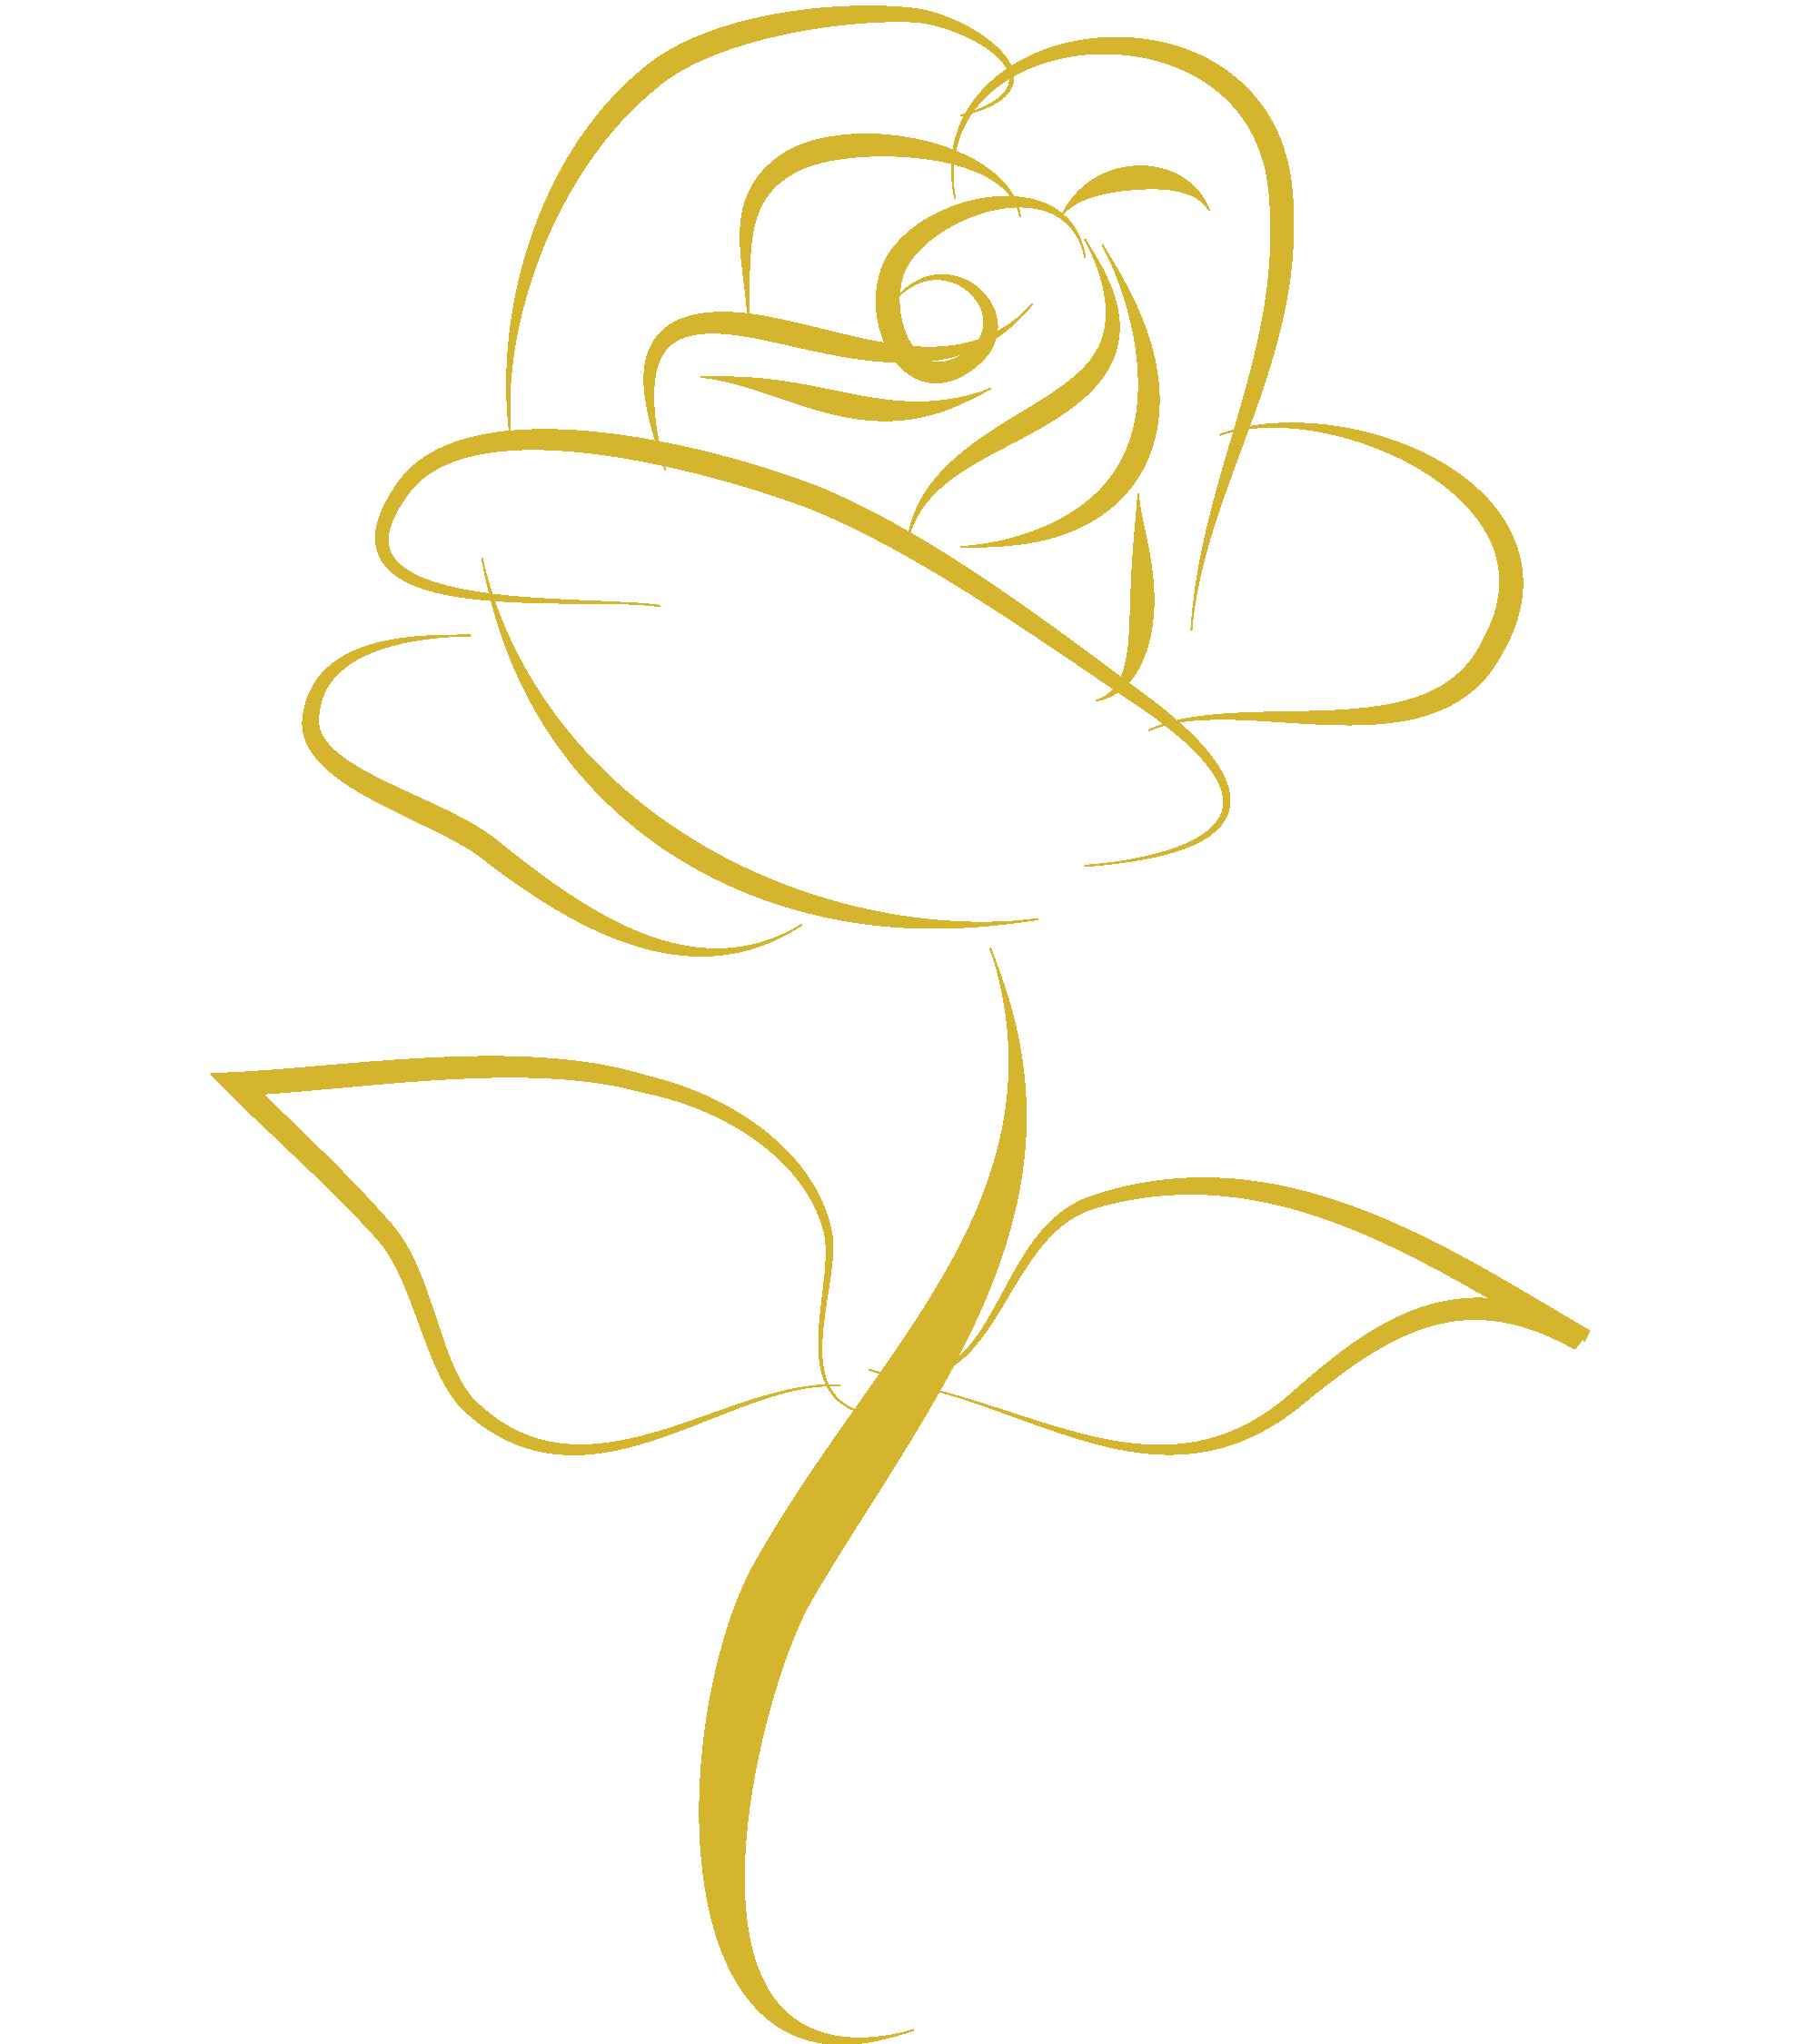 Gold rose png. Transparent pictures free icons